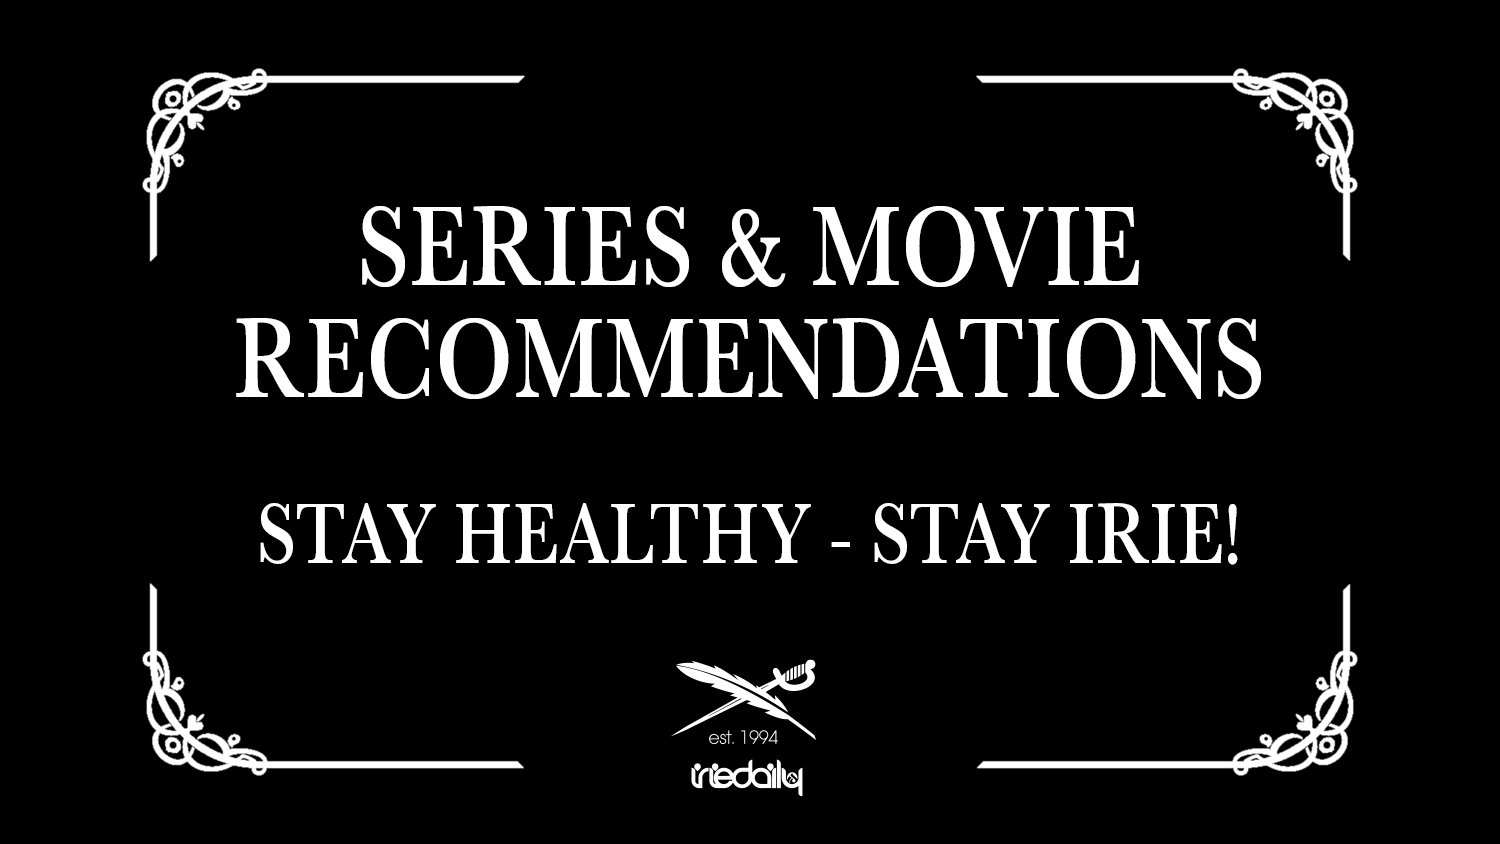 IRIEDAILY series & movie recommendations